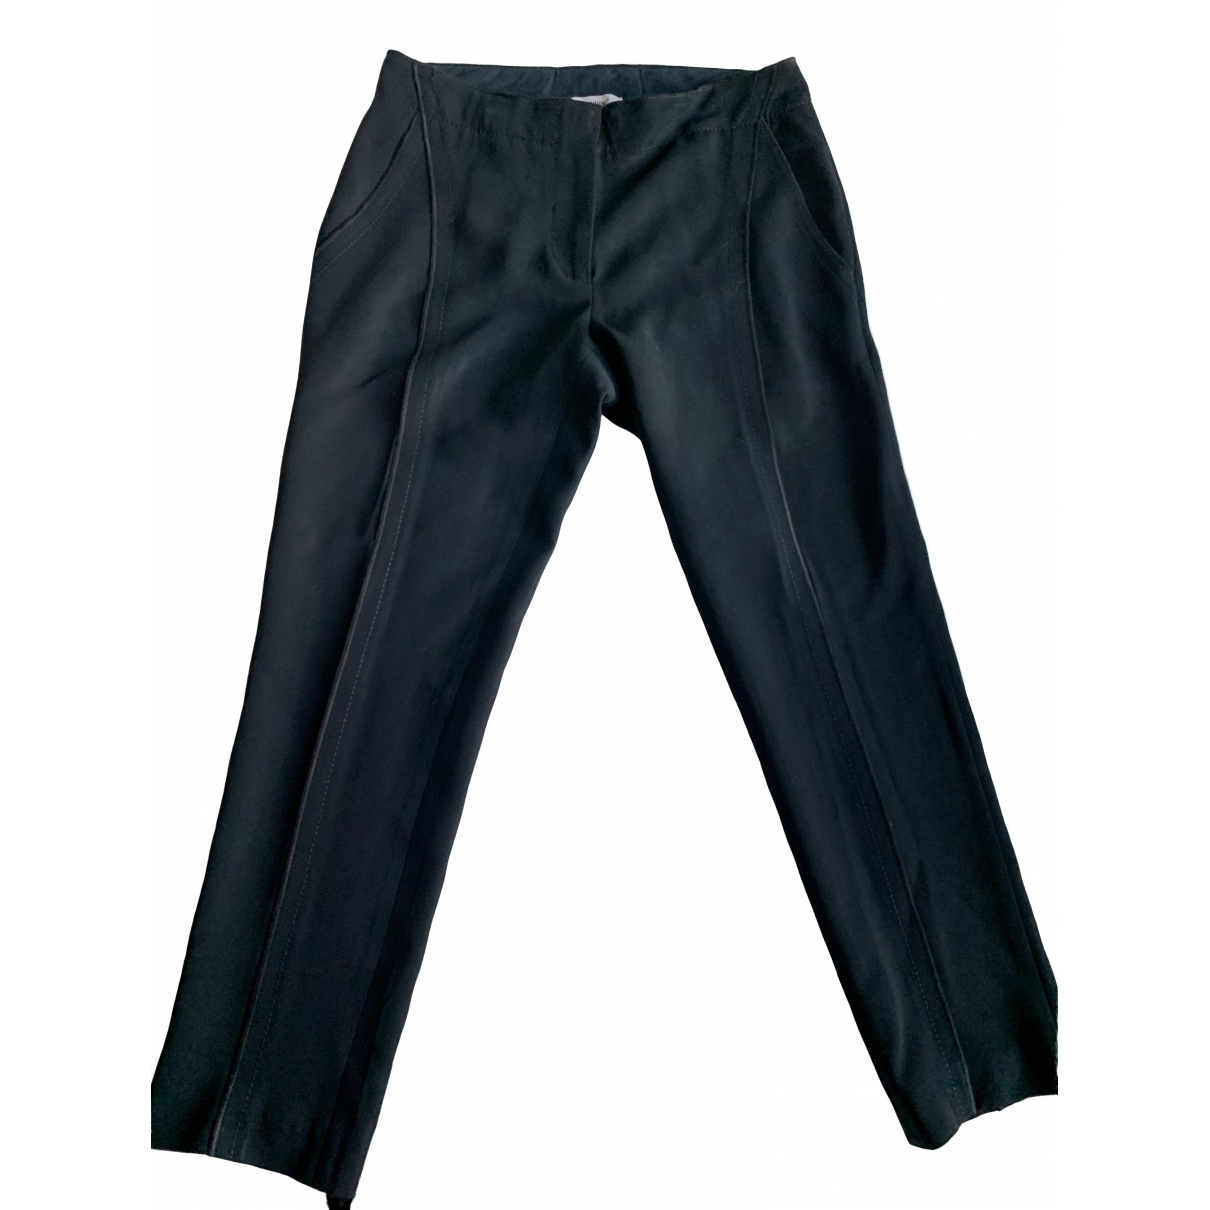 Moschino \N Black Trousers for Women 38 IT